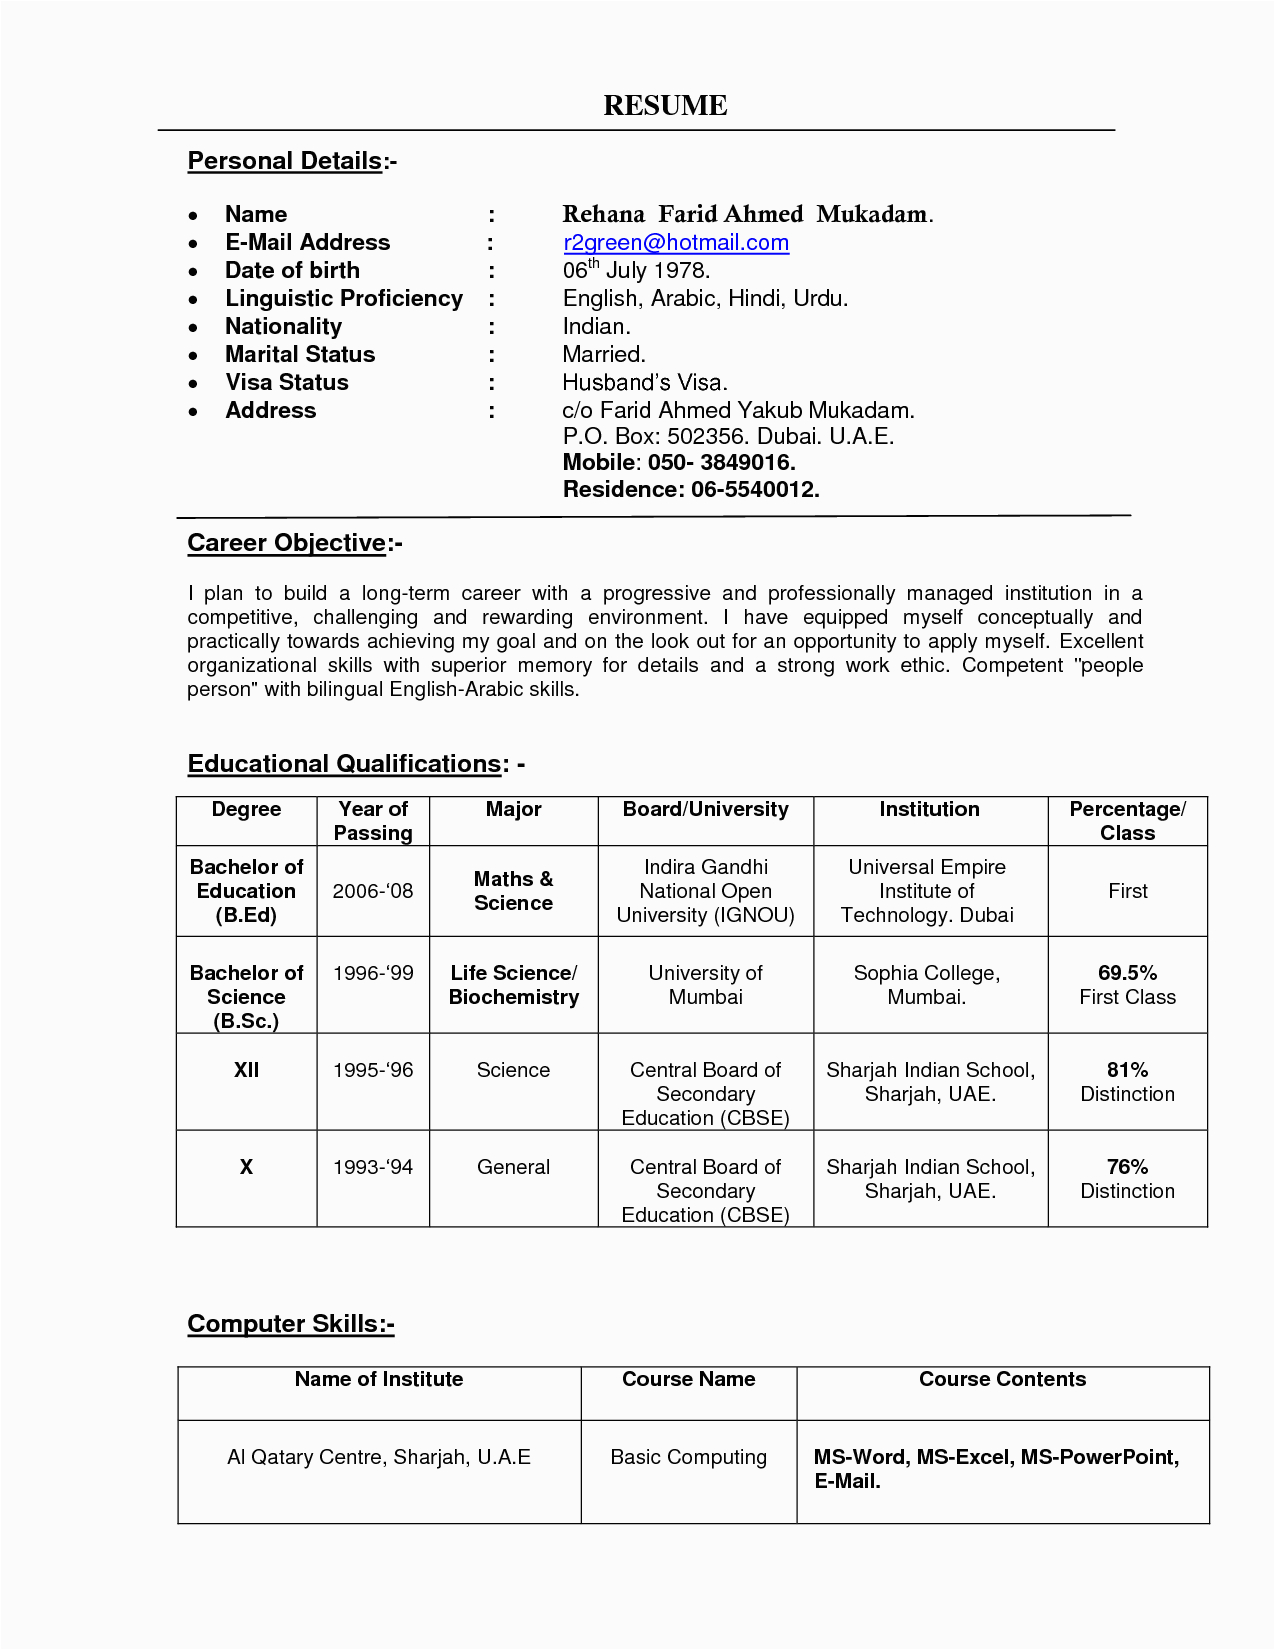 Sample Resume for College Principal In India Resume format Used In India